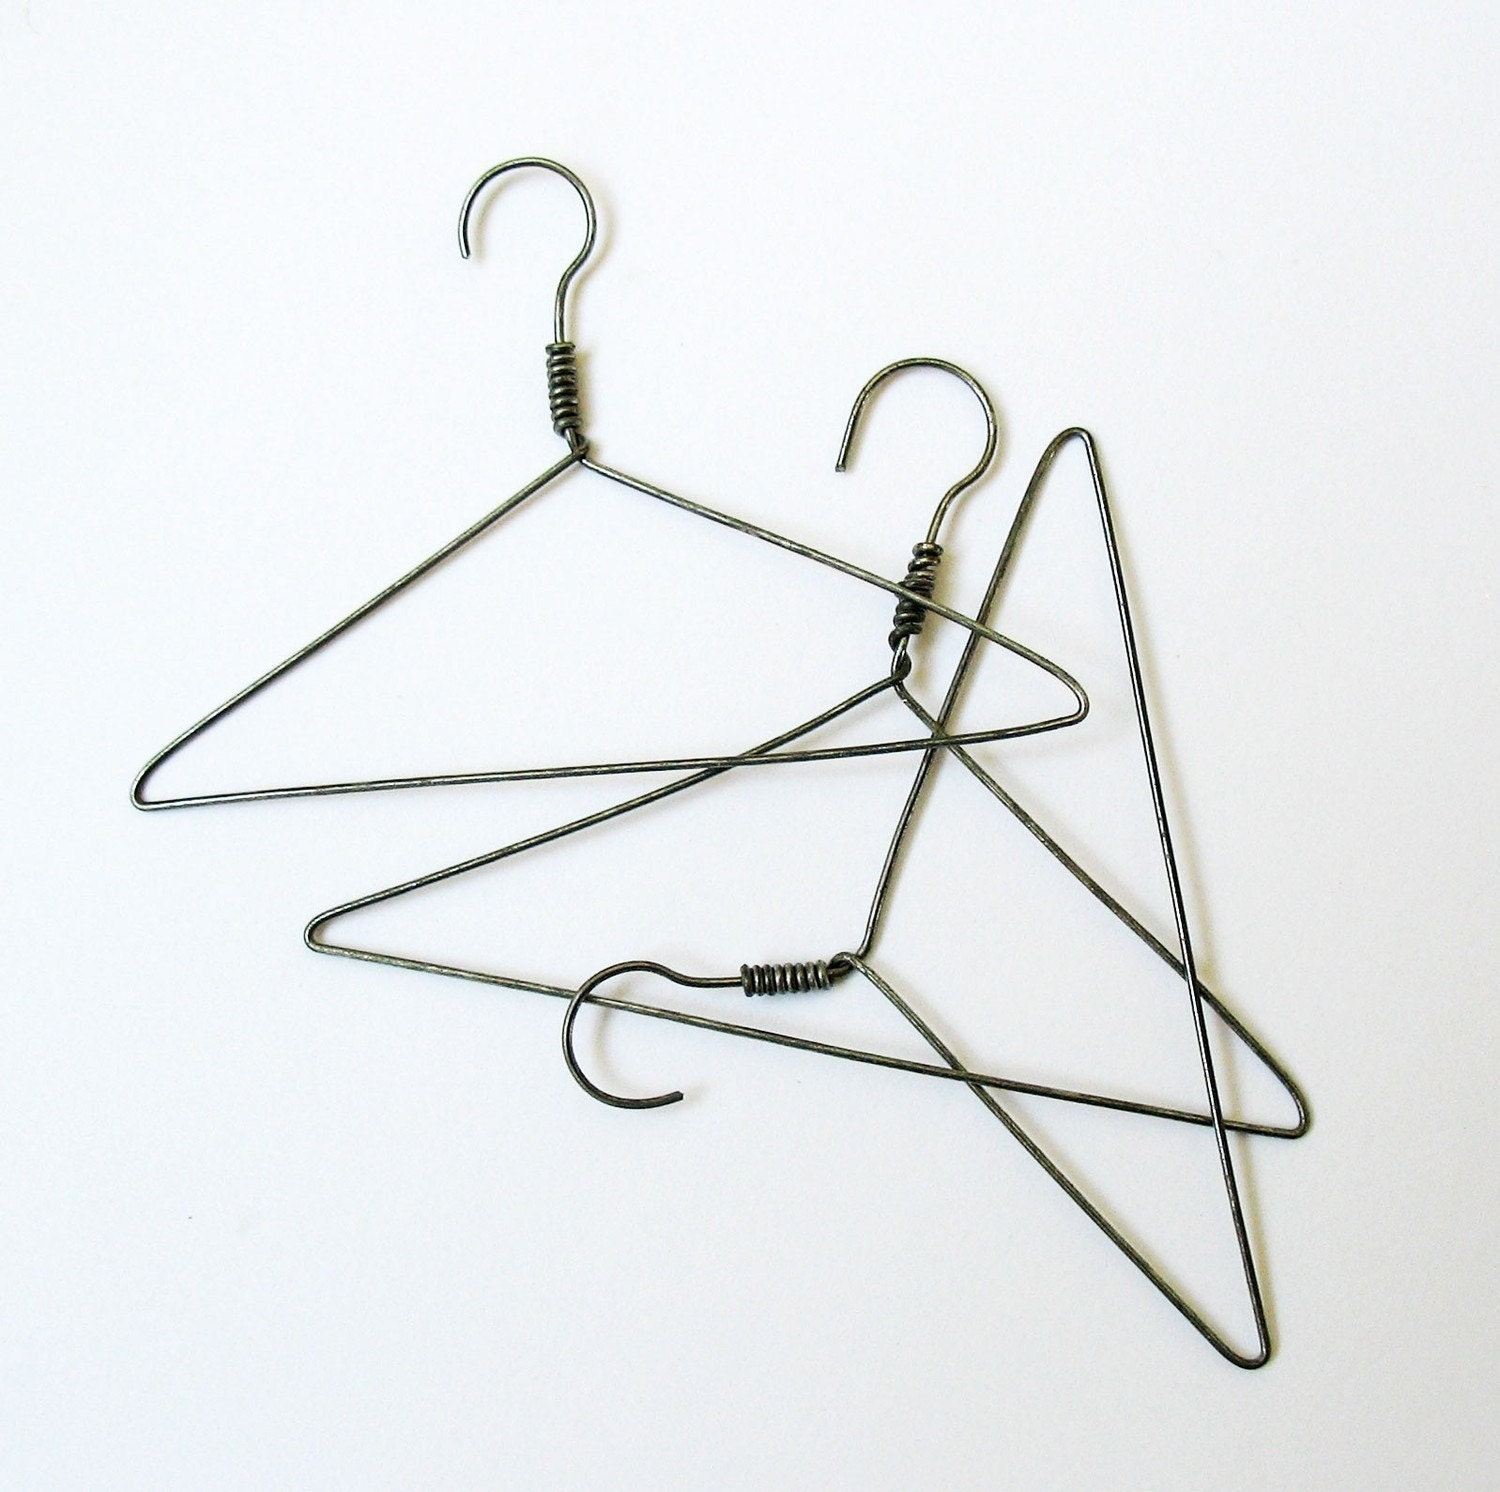 Mini Wire Hangers By Cardblanc On Etsy